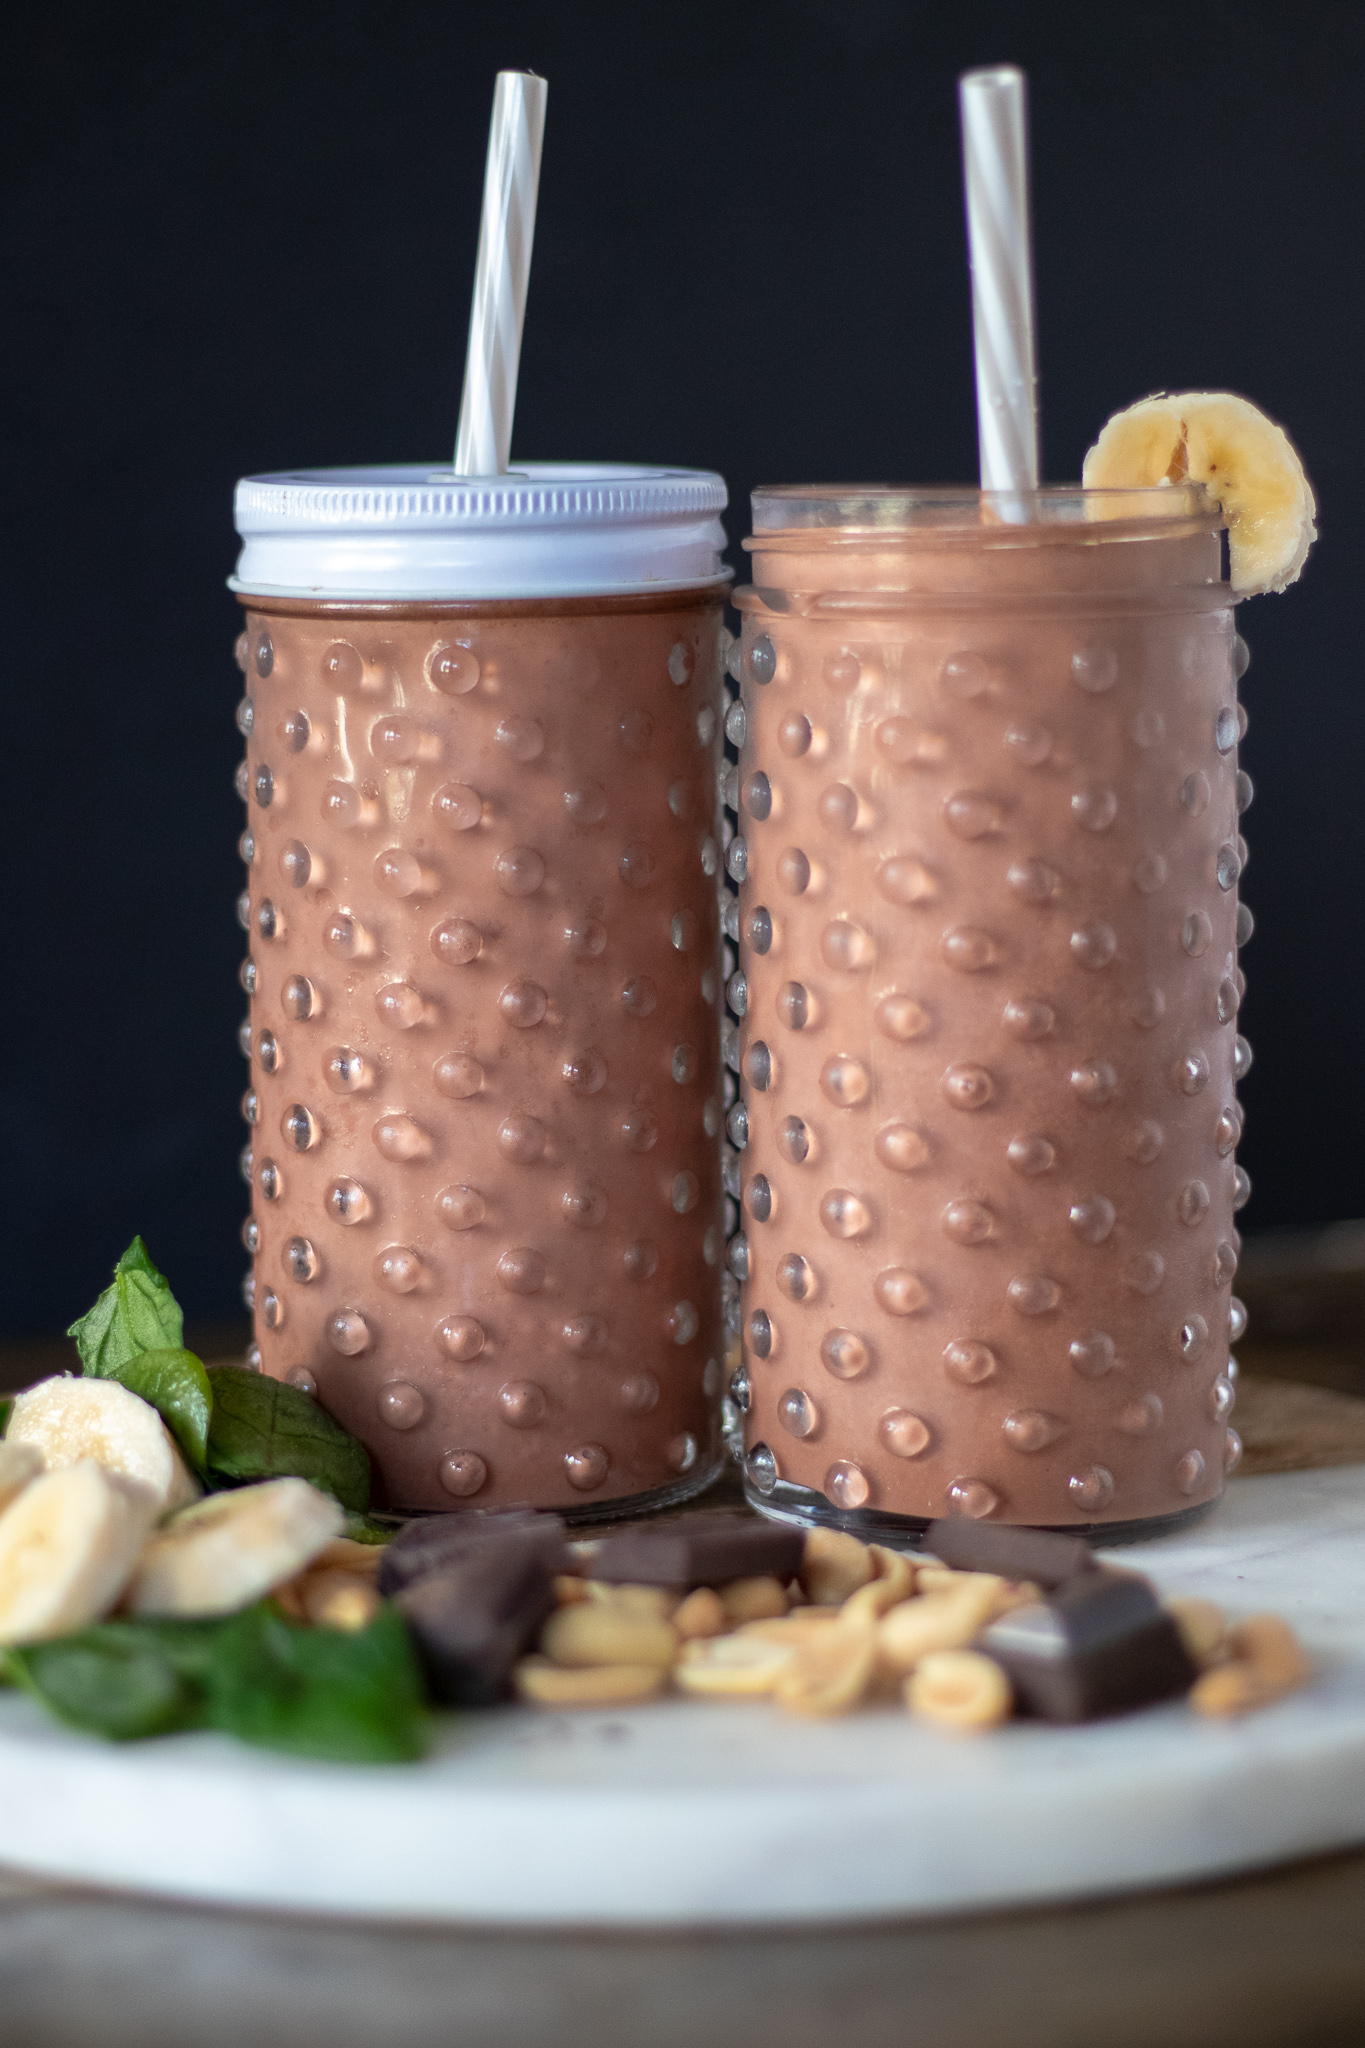 """I am normally not a huge fan of hiding veggies from my kids or husbands in the food I make, but smoothies are an exception! I love beets! Raw, roasted, pickled, I love them. My family, not so much. So if I can sneak these nutrient dense, vitamin rich veggies into a shake without them knowing, I will do it every time ( cause I'm tricky like that!) And I promise they always drink this one and are none the wiser!. This smoothie is sweet, nutty, chocolaty goodness, and a healthy way to start you or your families day! And if you now have """"It's Tricky"""" stuck in you head for the rest of the day, you are most welcome. I'm right there singing along with you."""